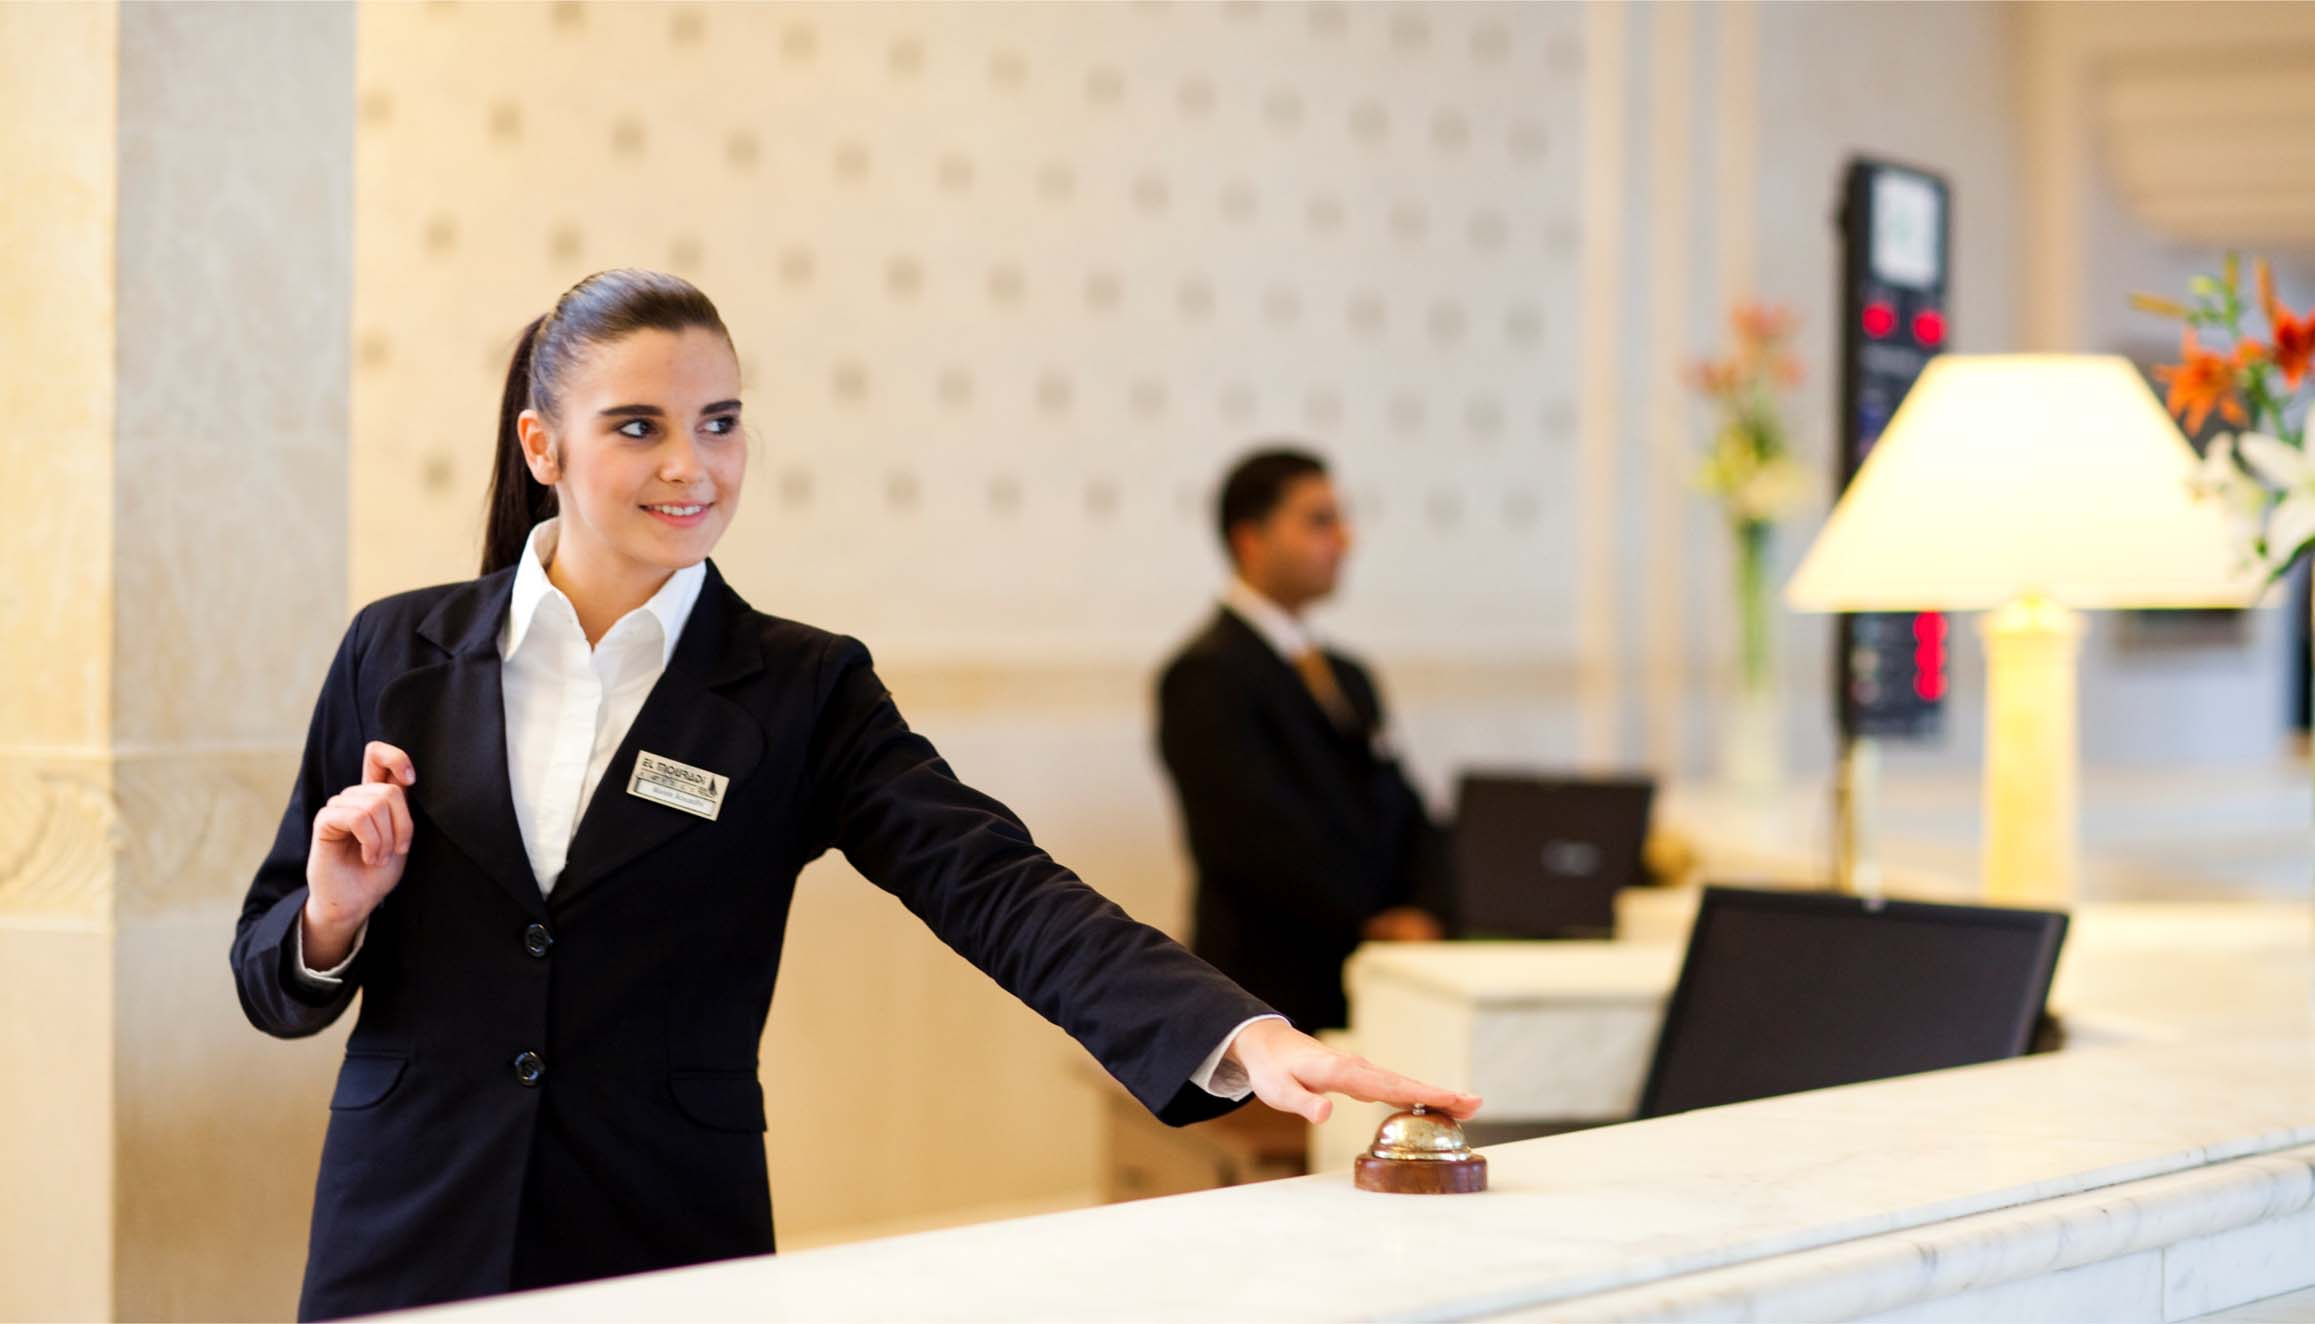 reception hospitality Become trained in hospitality management in just 1 week improve your leadership skills find out more now.